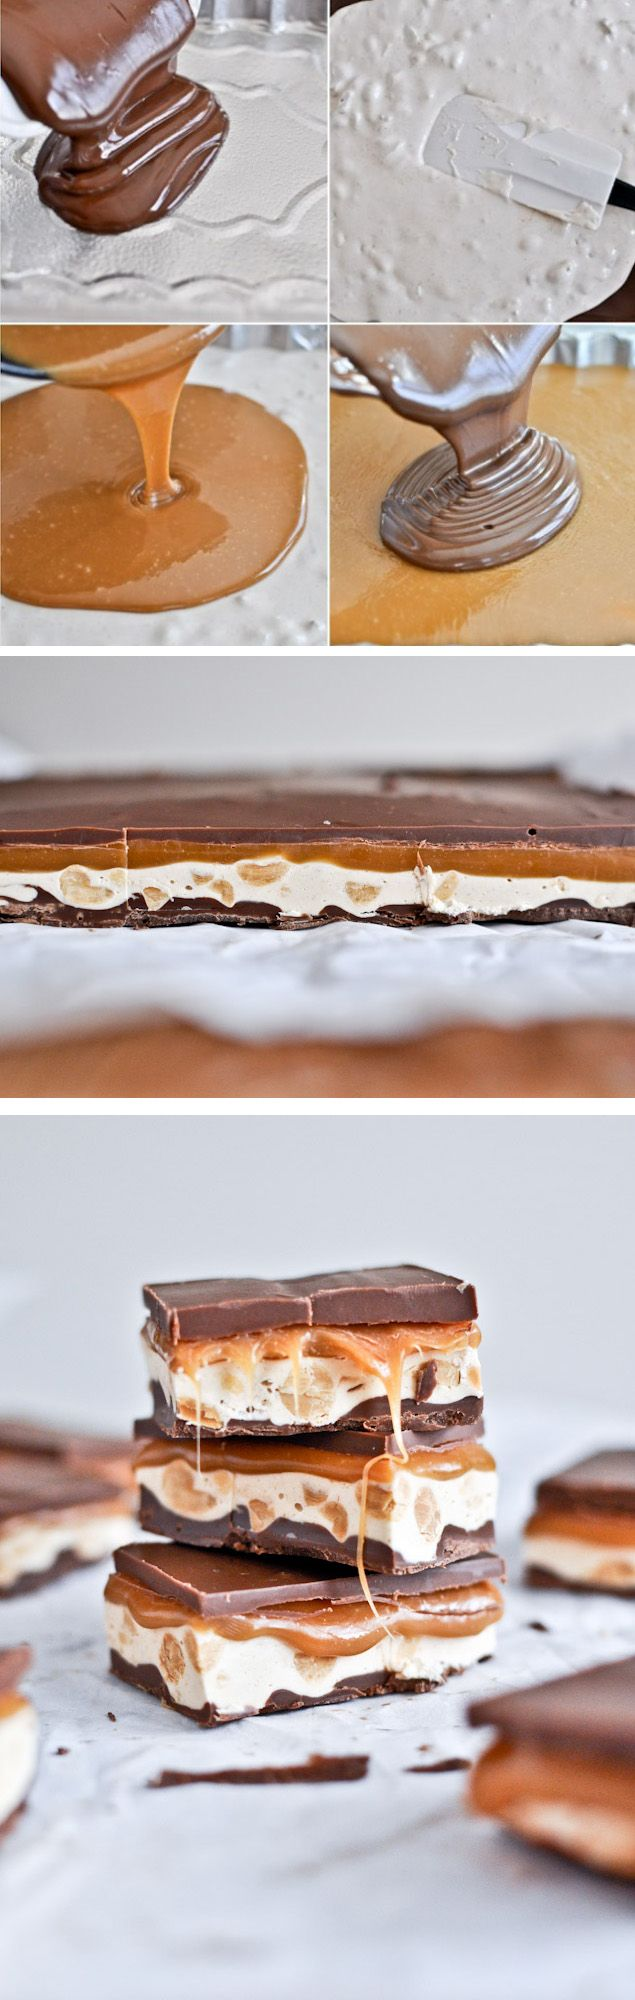 homemade snickers bars | Homemade Food Recipes @Hollie Baker Kaitoula Tou Rodolfou Maslarova